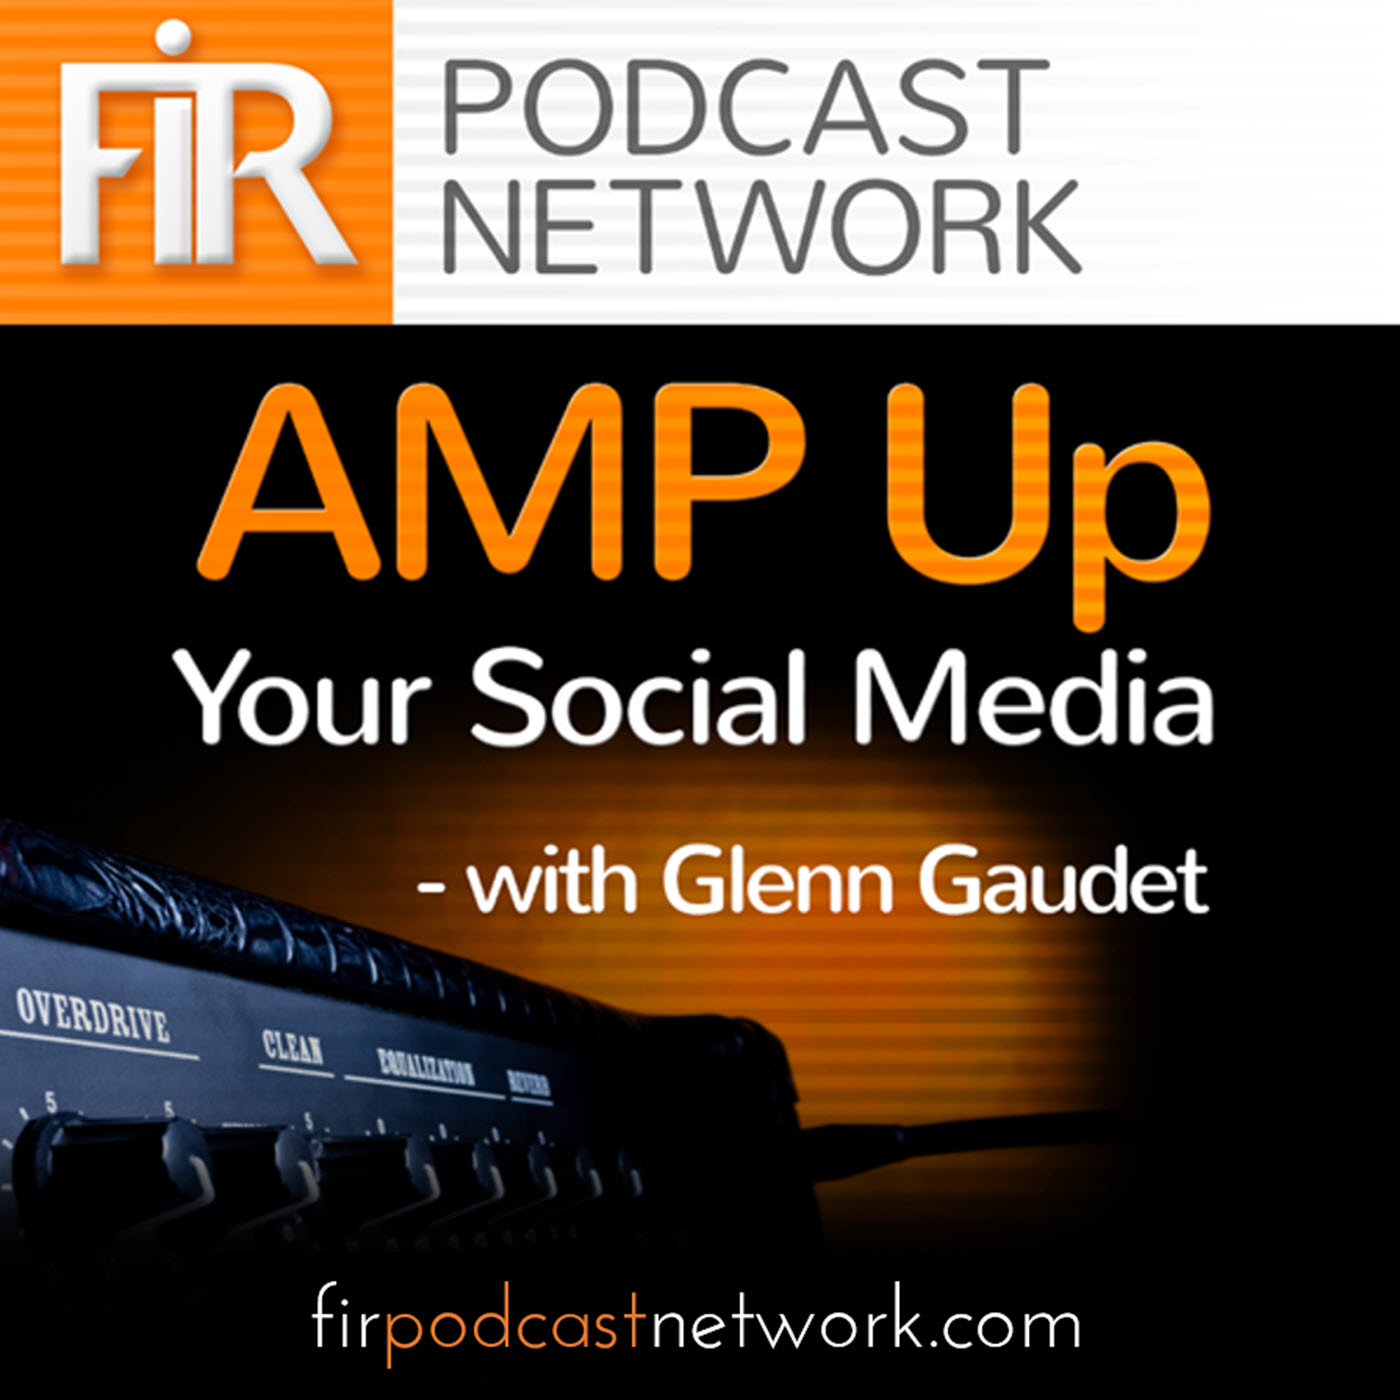 AMP Up Your Social media